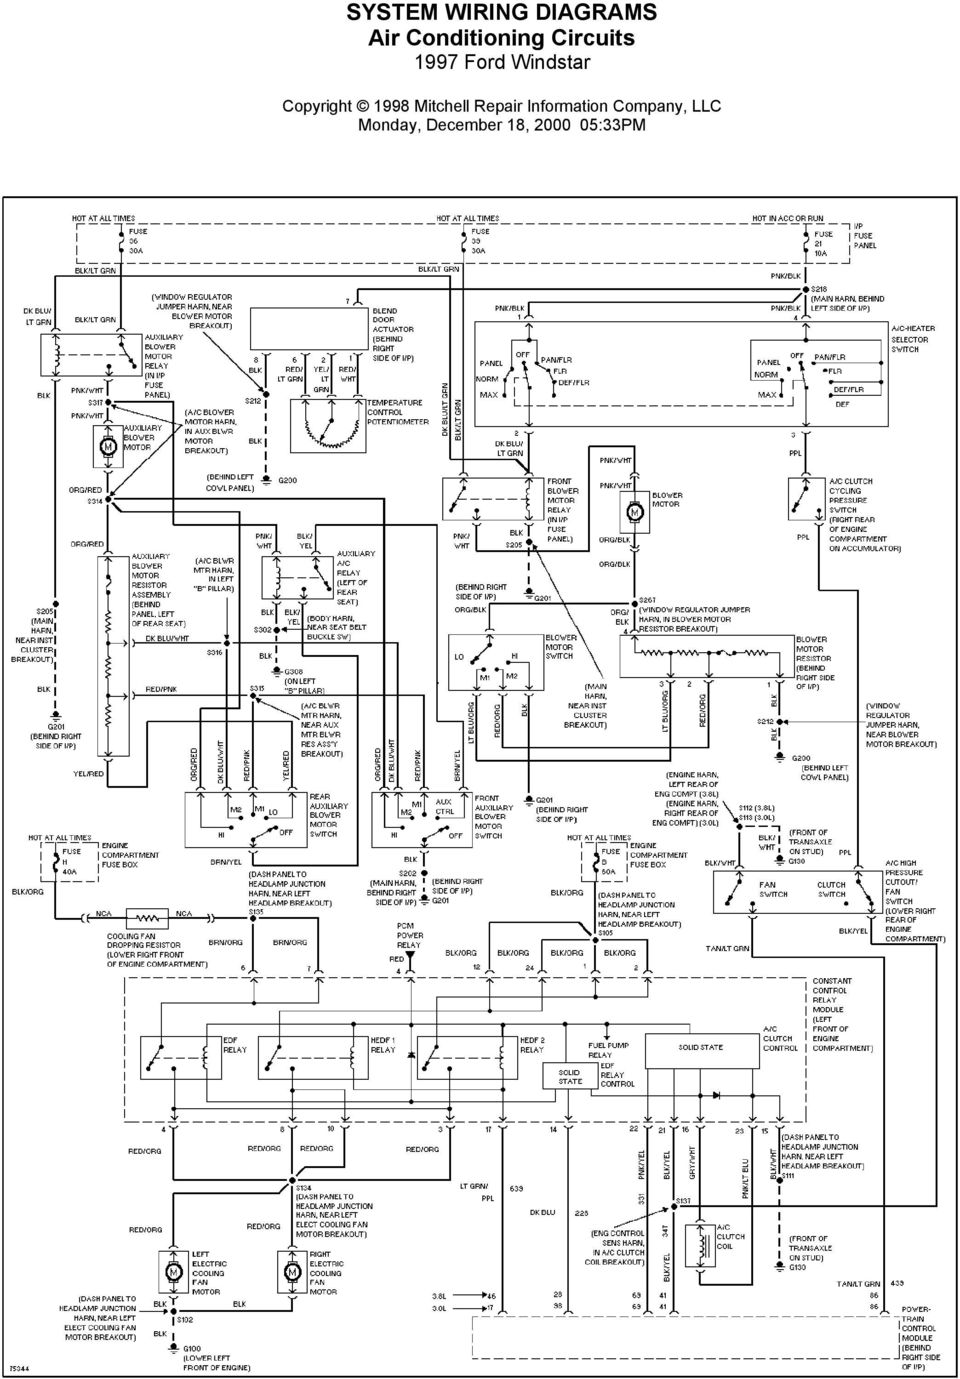 Chevy Cruze Ac Wiring Diagram. chevrolet cruze 2013 repair manual  servicemanualspdf. chevrolet cruze workshop service manual repair manual. chevy  cruze 1 4t engine diagram. 2014 chevy cruze radio wiring diagram sample. 01A.2002-acura-tl-radio.info. All Rights Reserved.